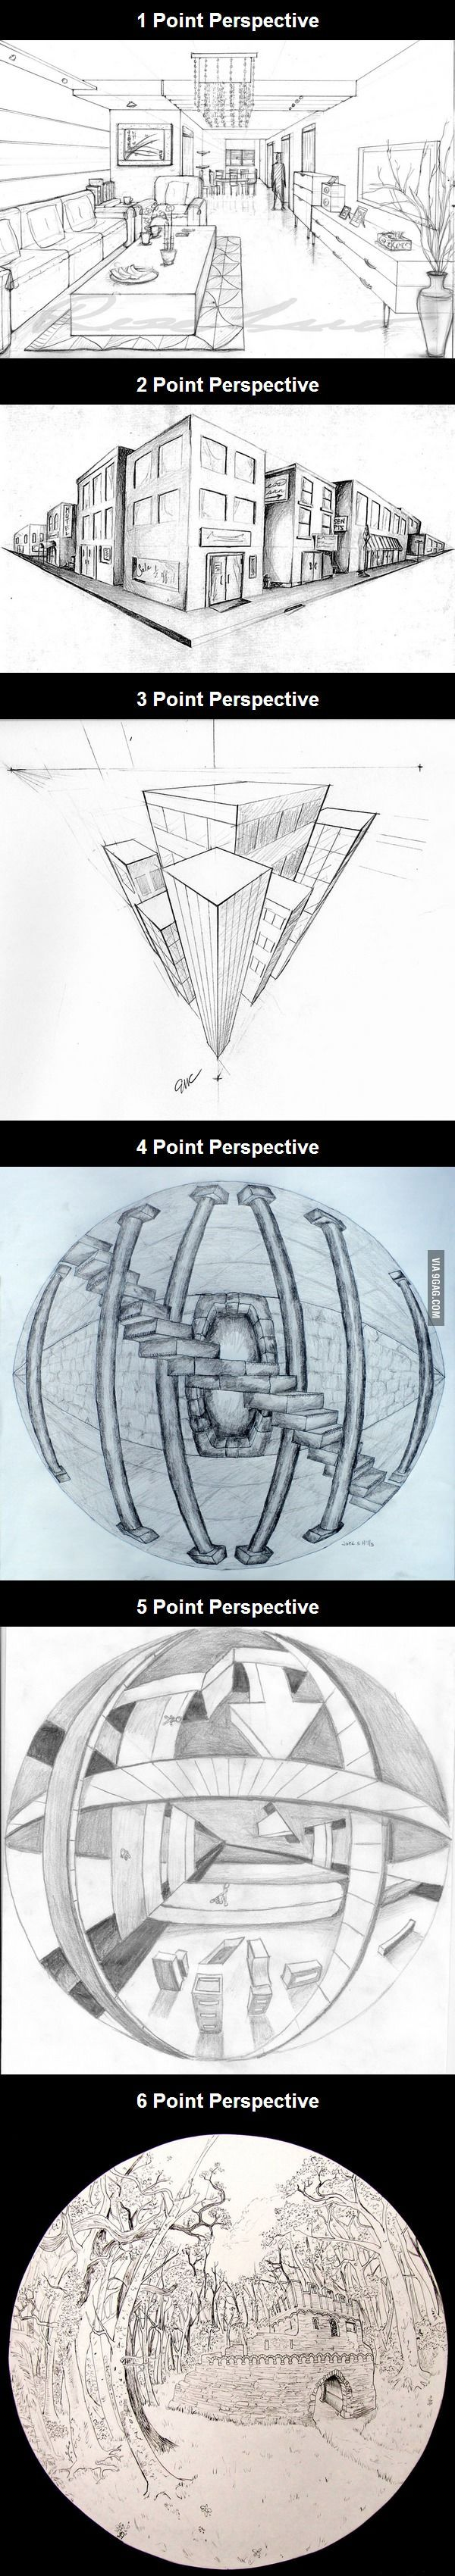 drawing techniques to learn | perspective | Pinterest | Drawing ...